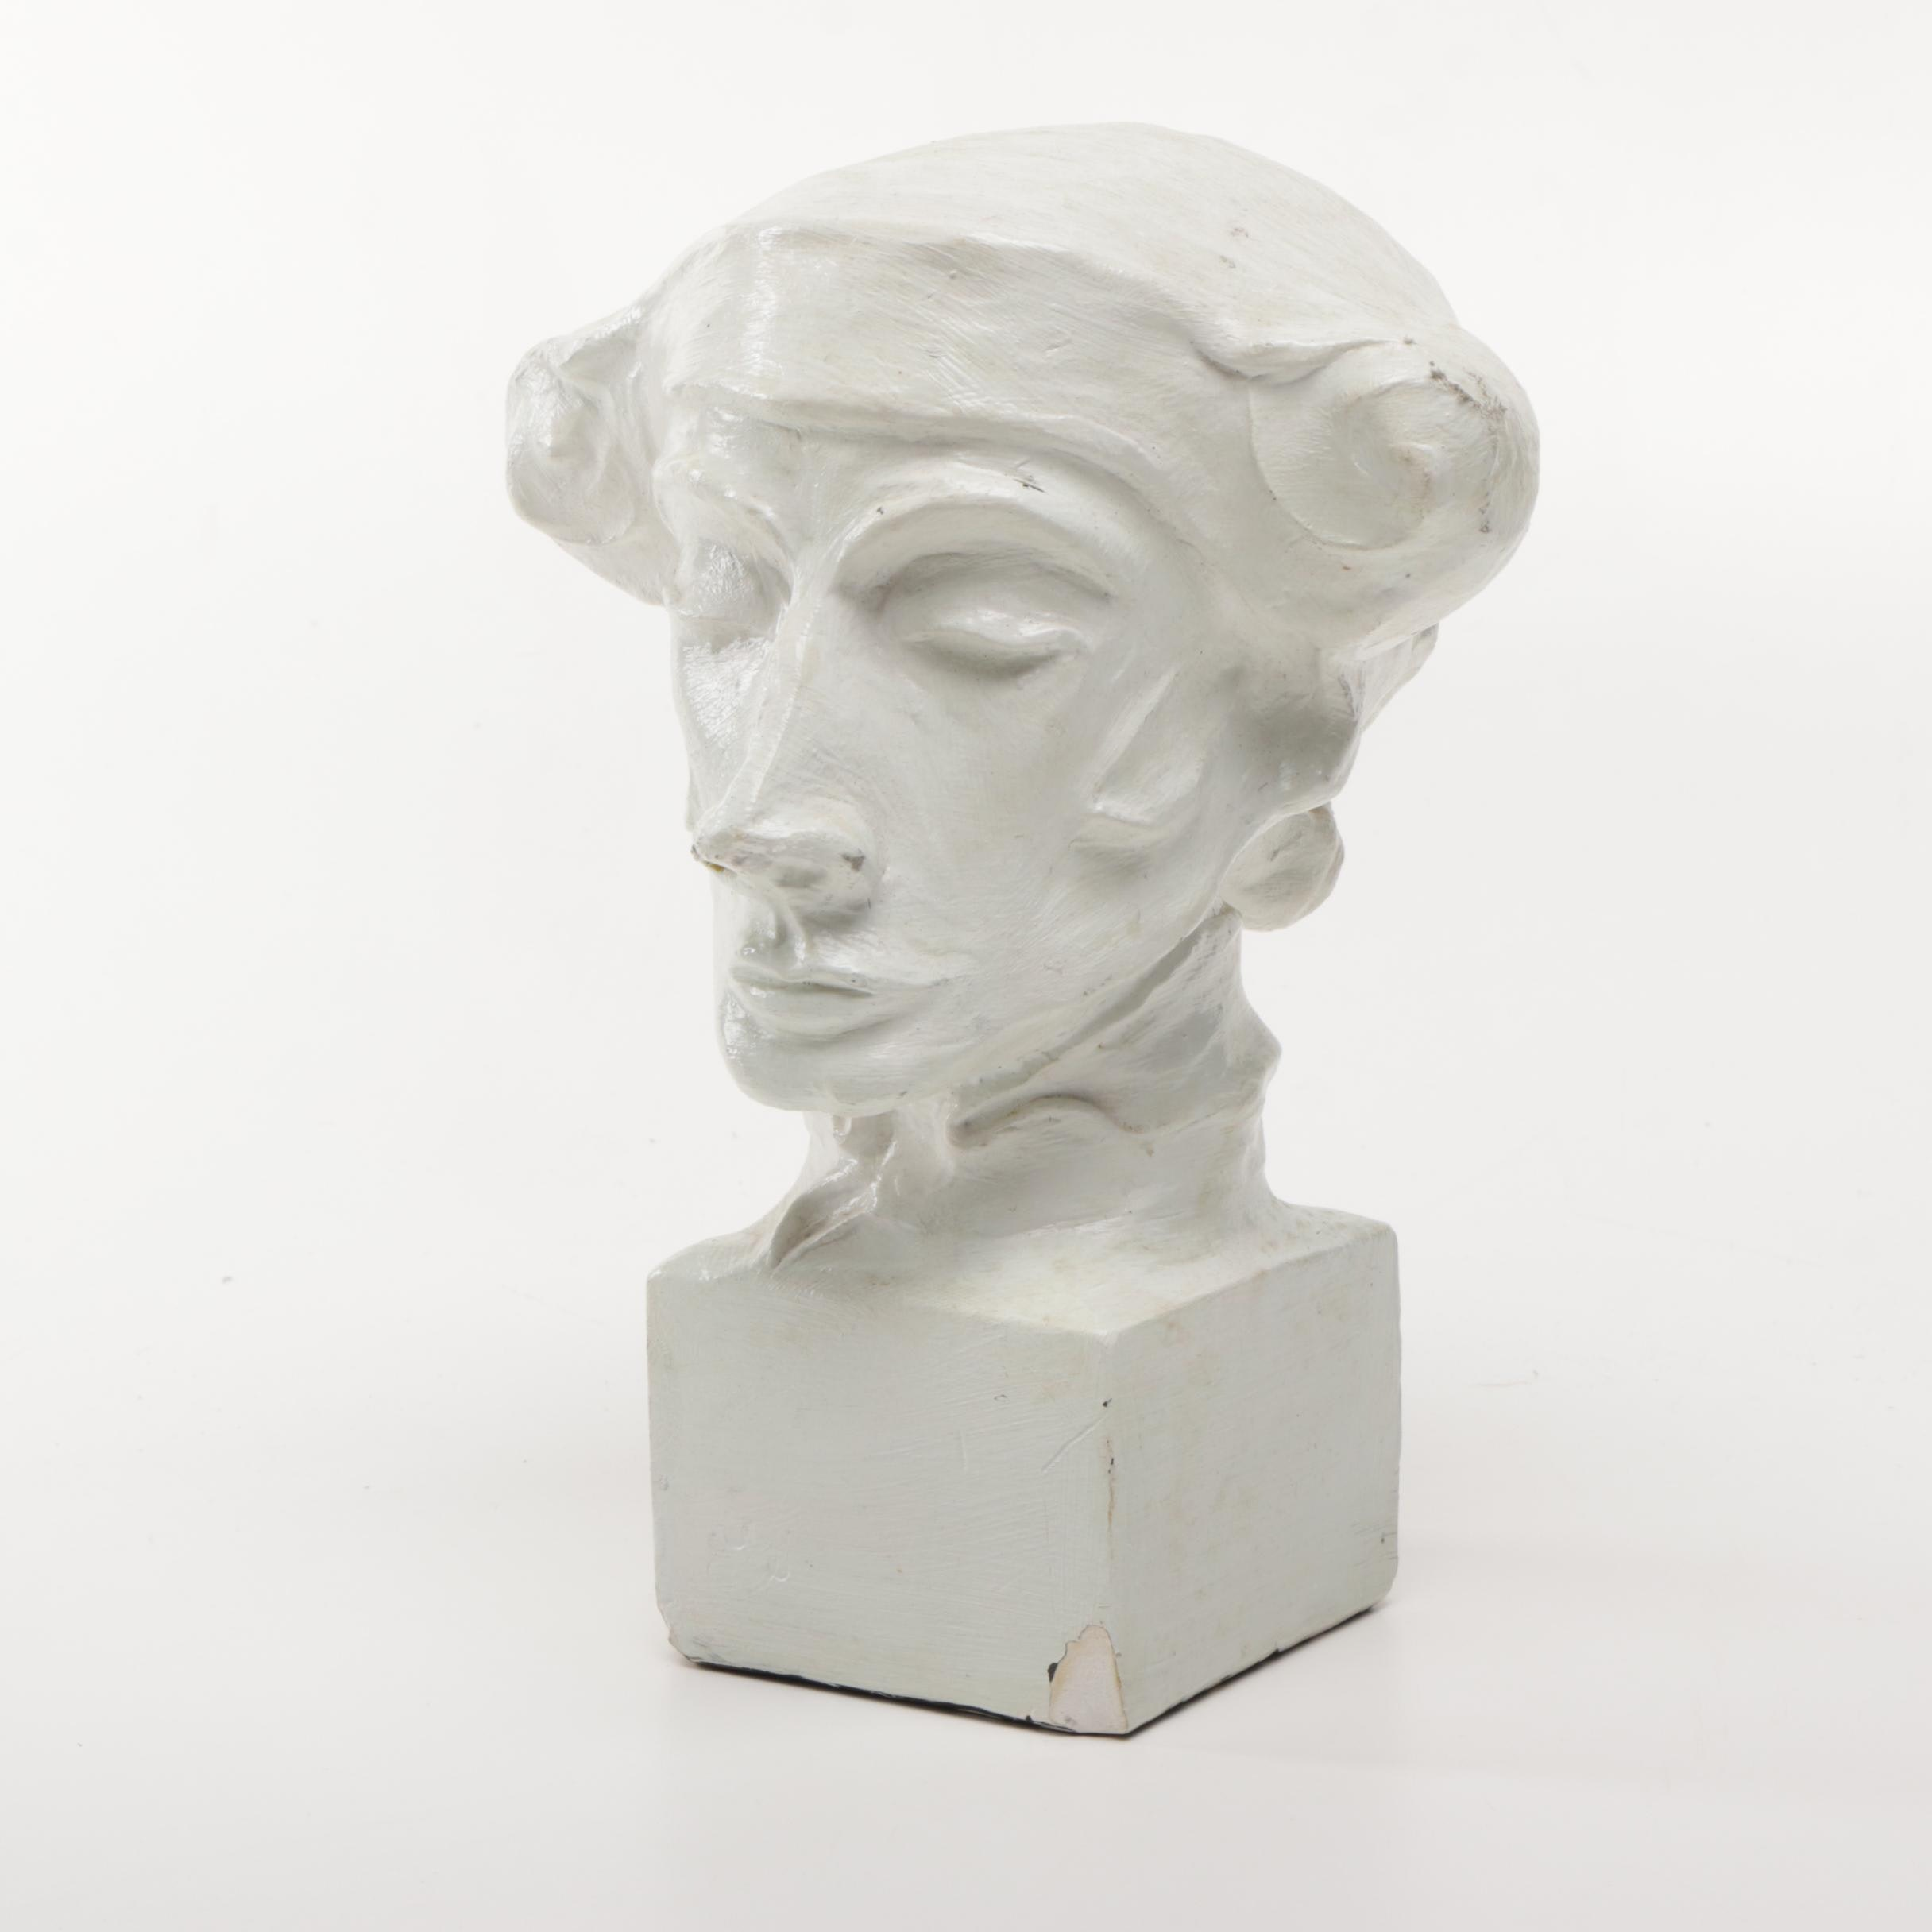 Plaster Sculpture of Male Bust